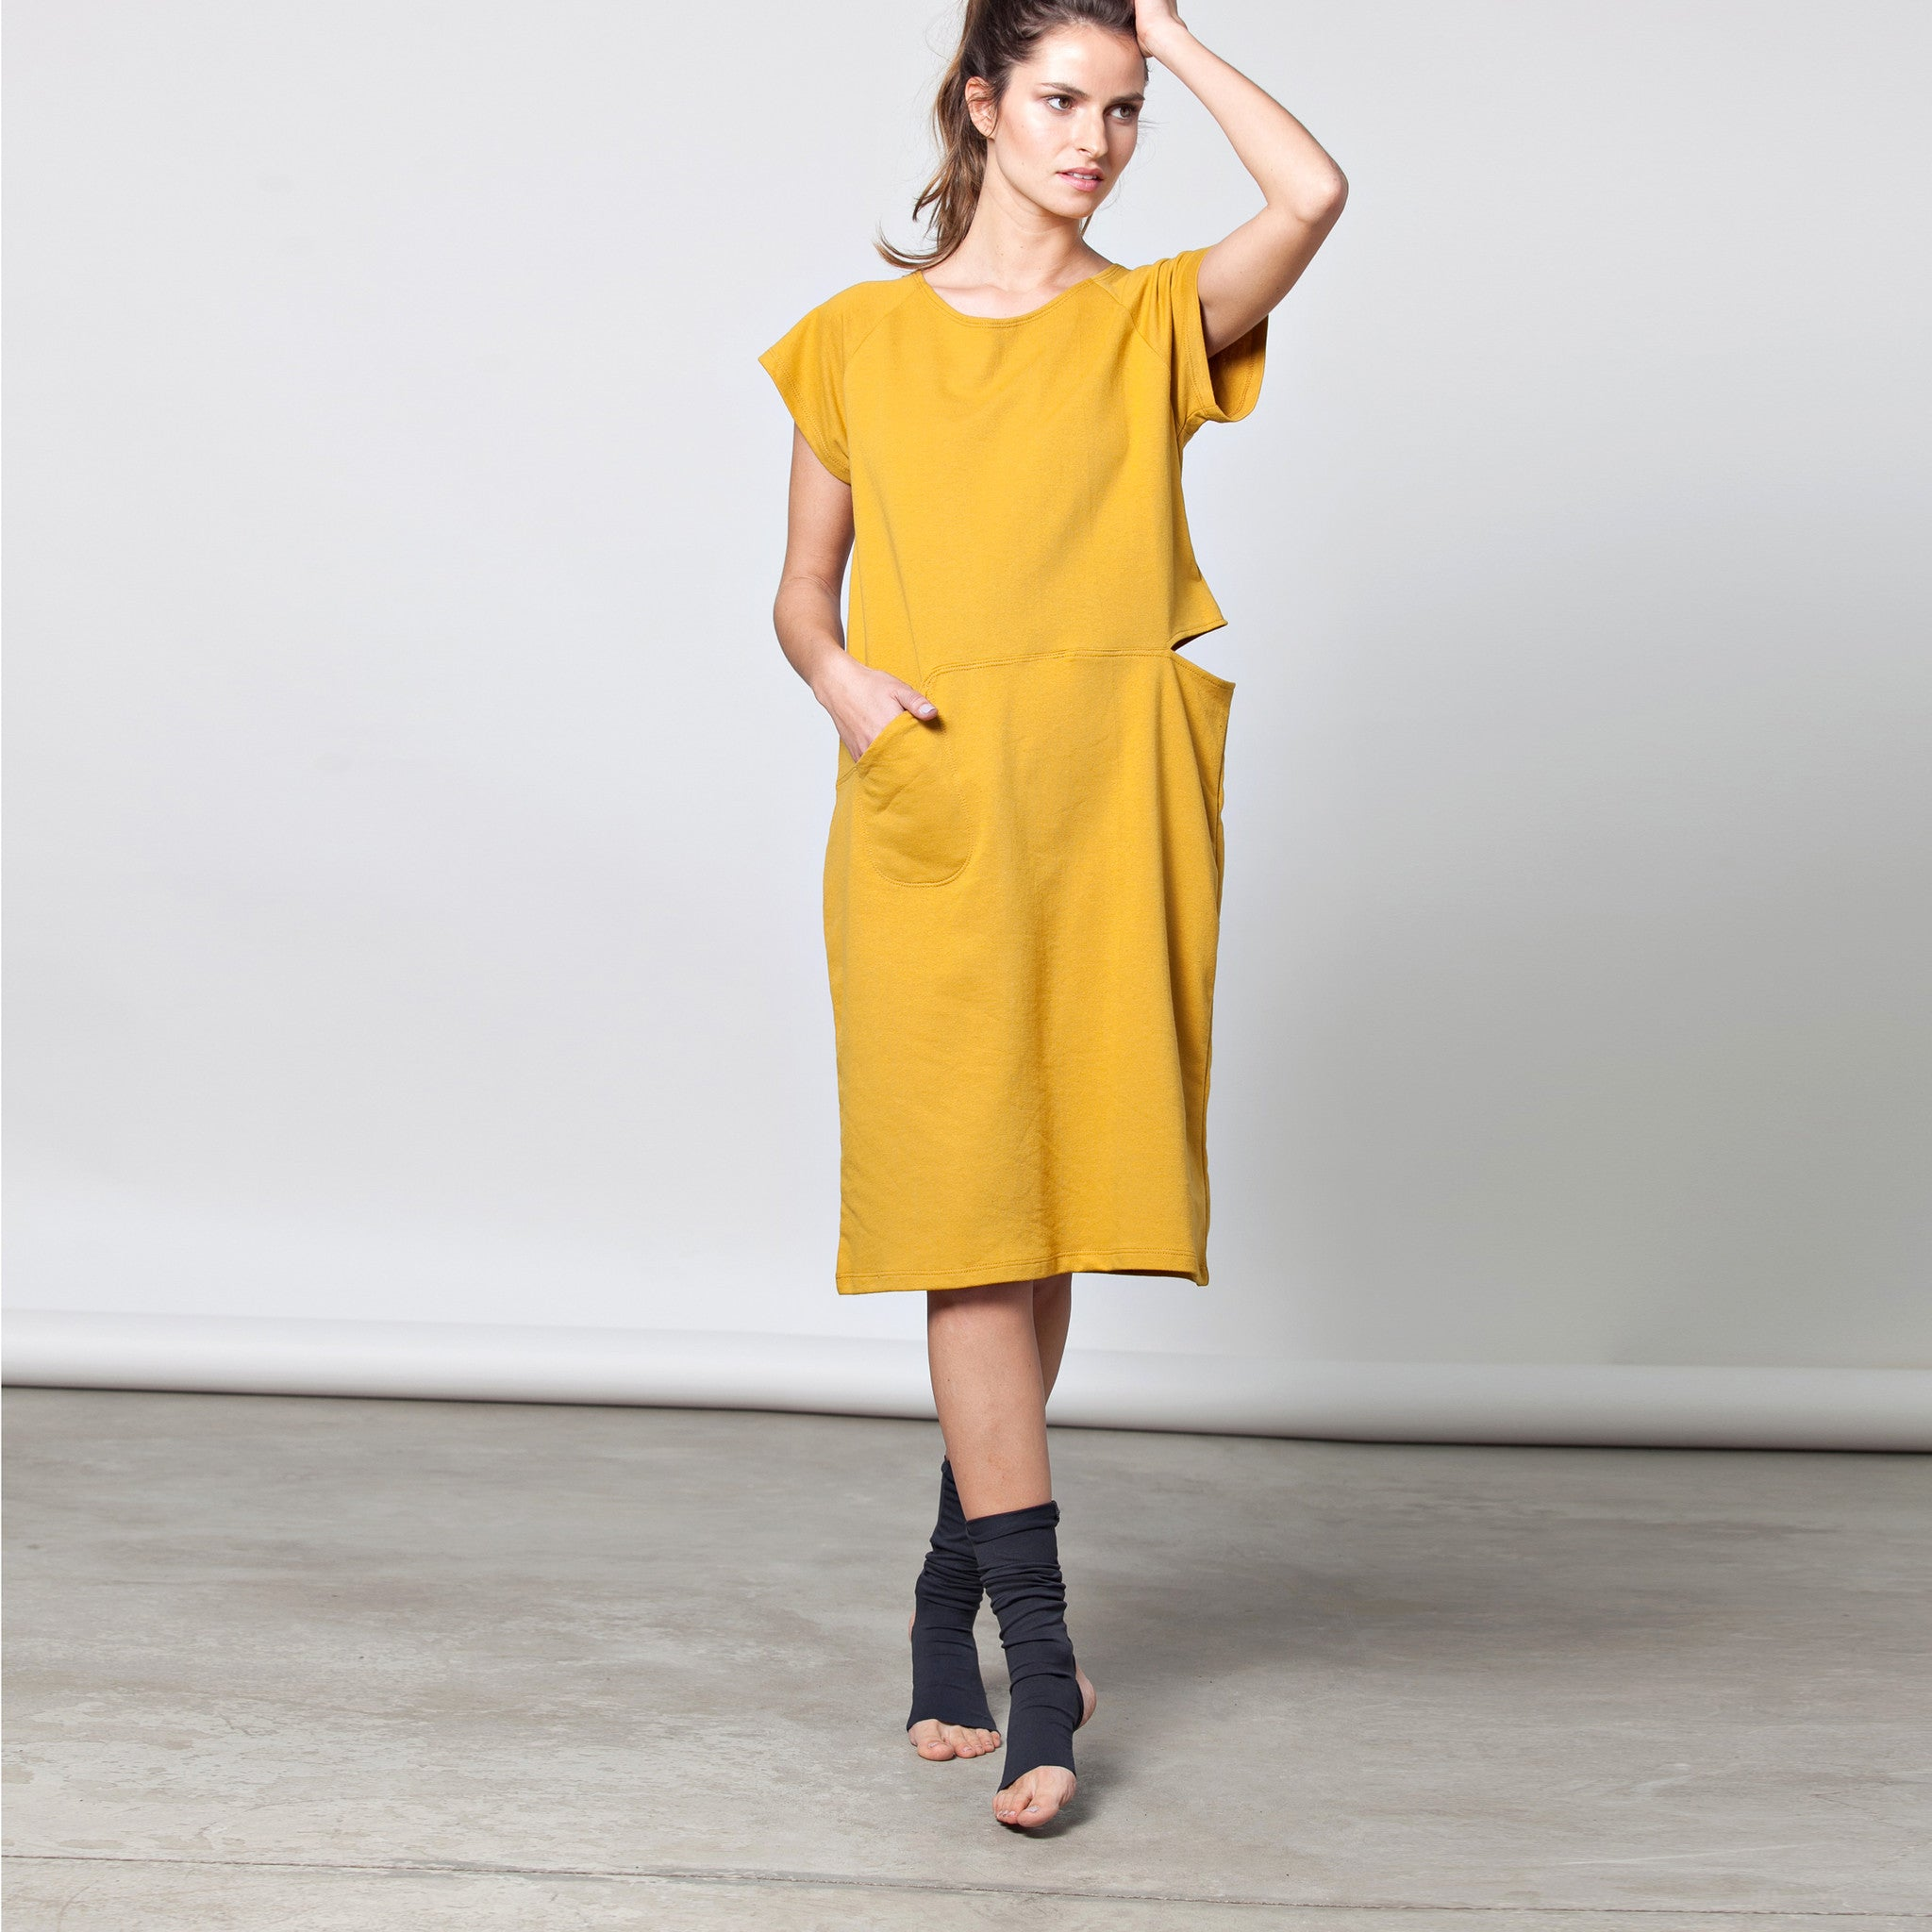 Pocket dress with a slit in cotton French terry - DuendeFashion  - 5